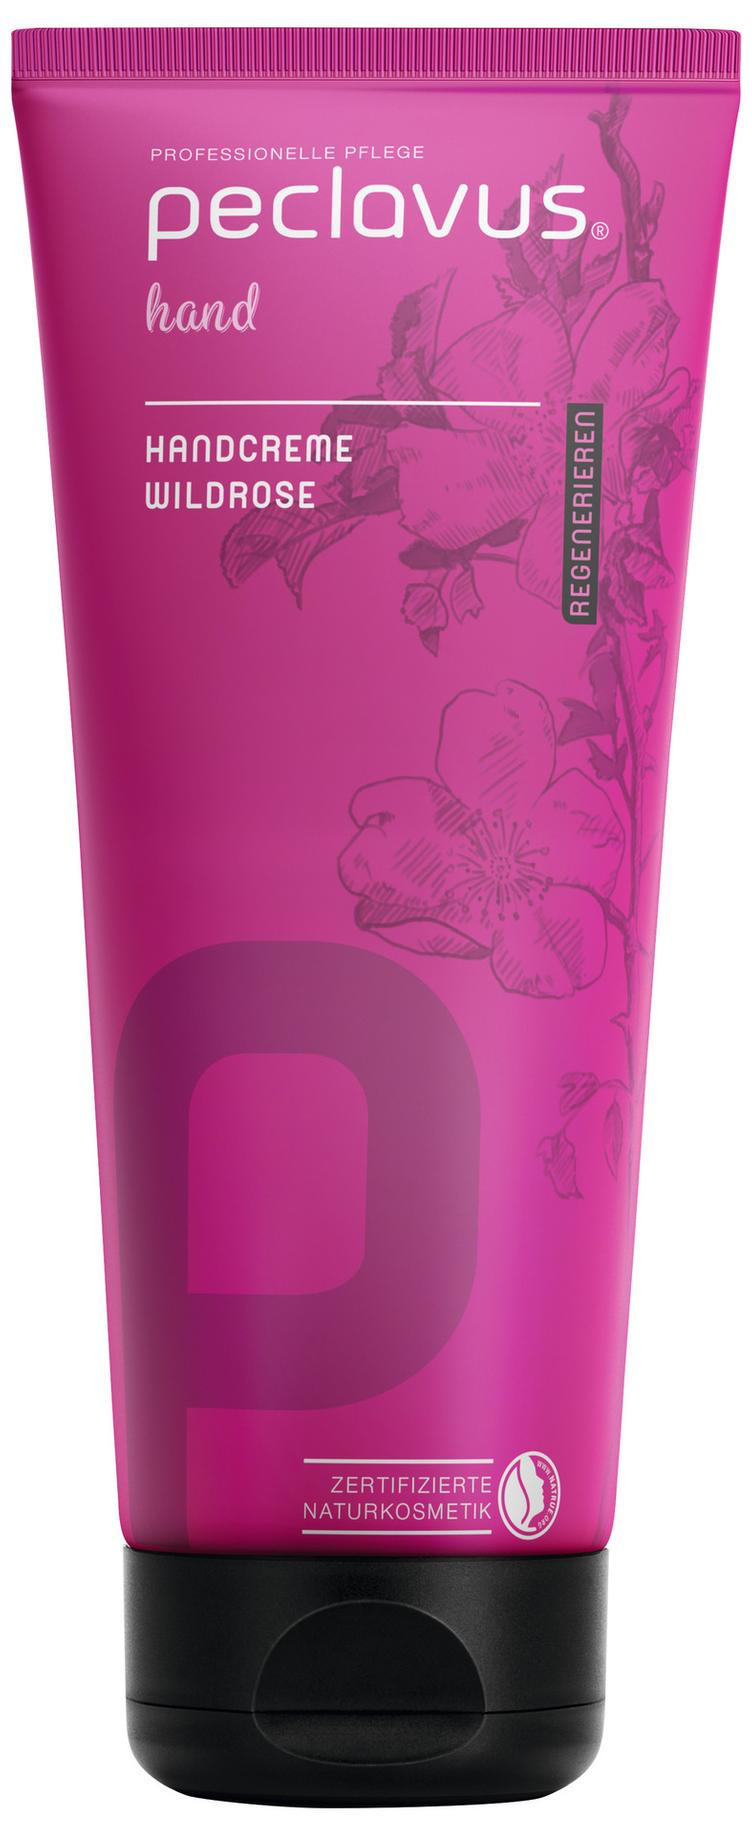 Handcreme (Wildrose) 200ml